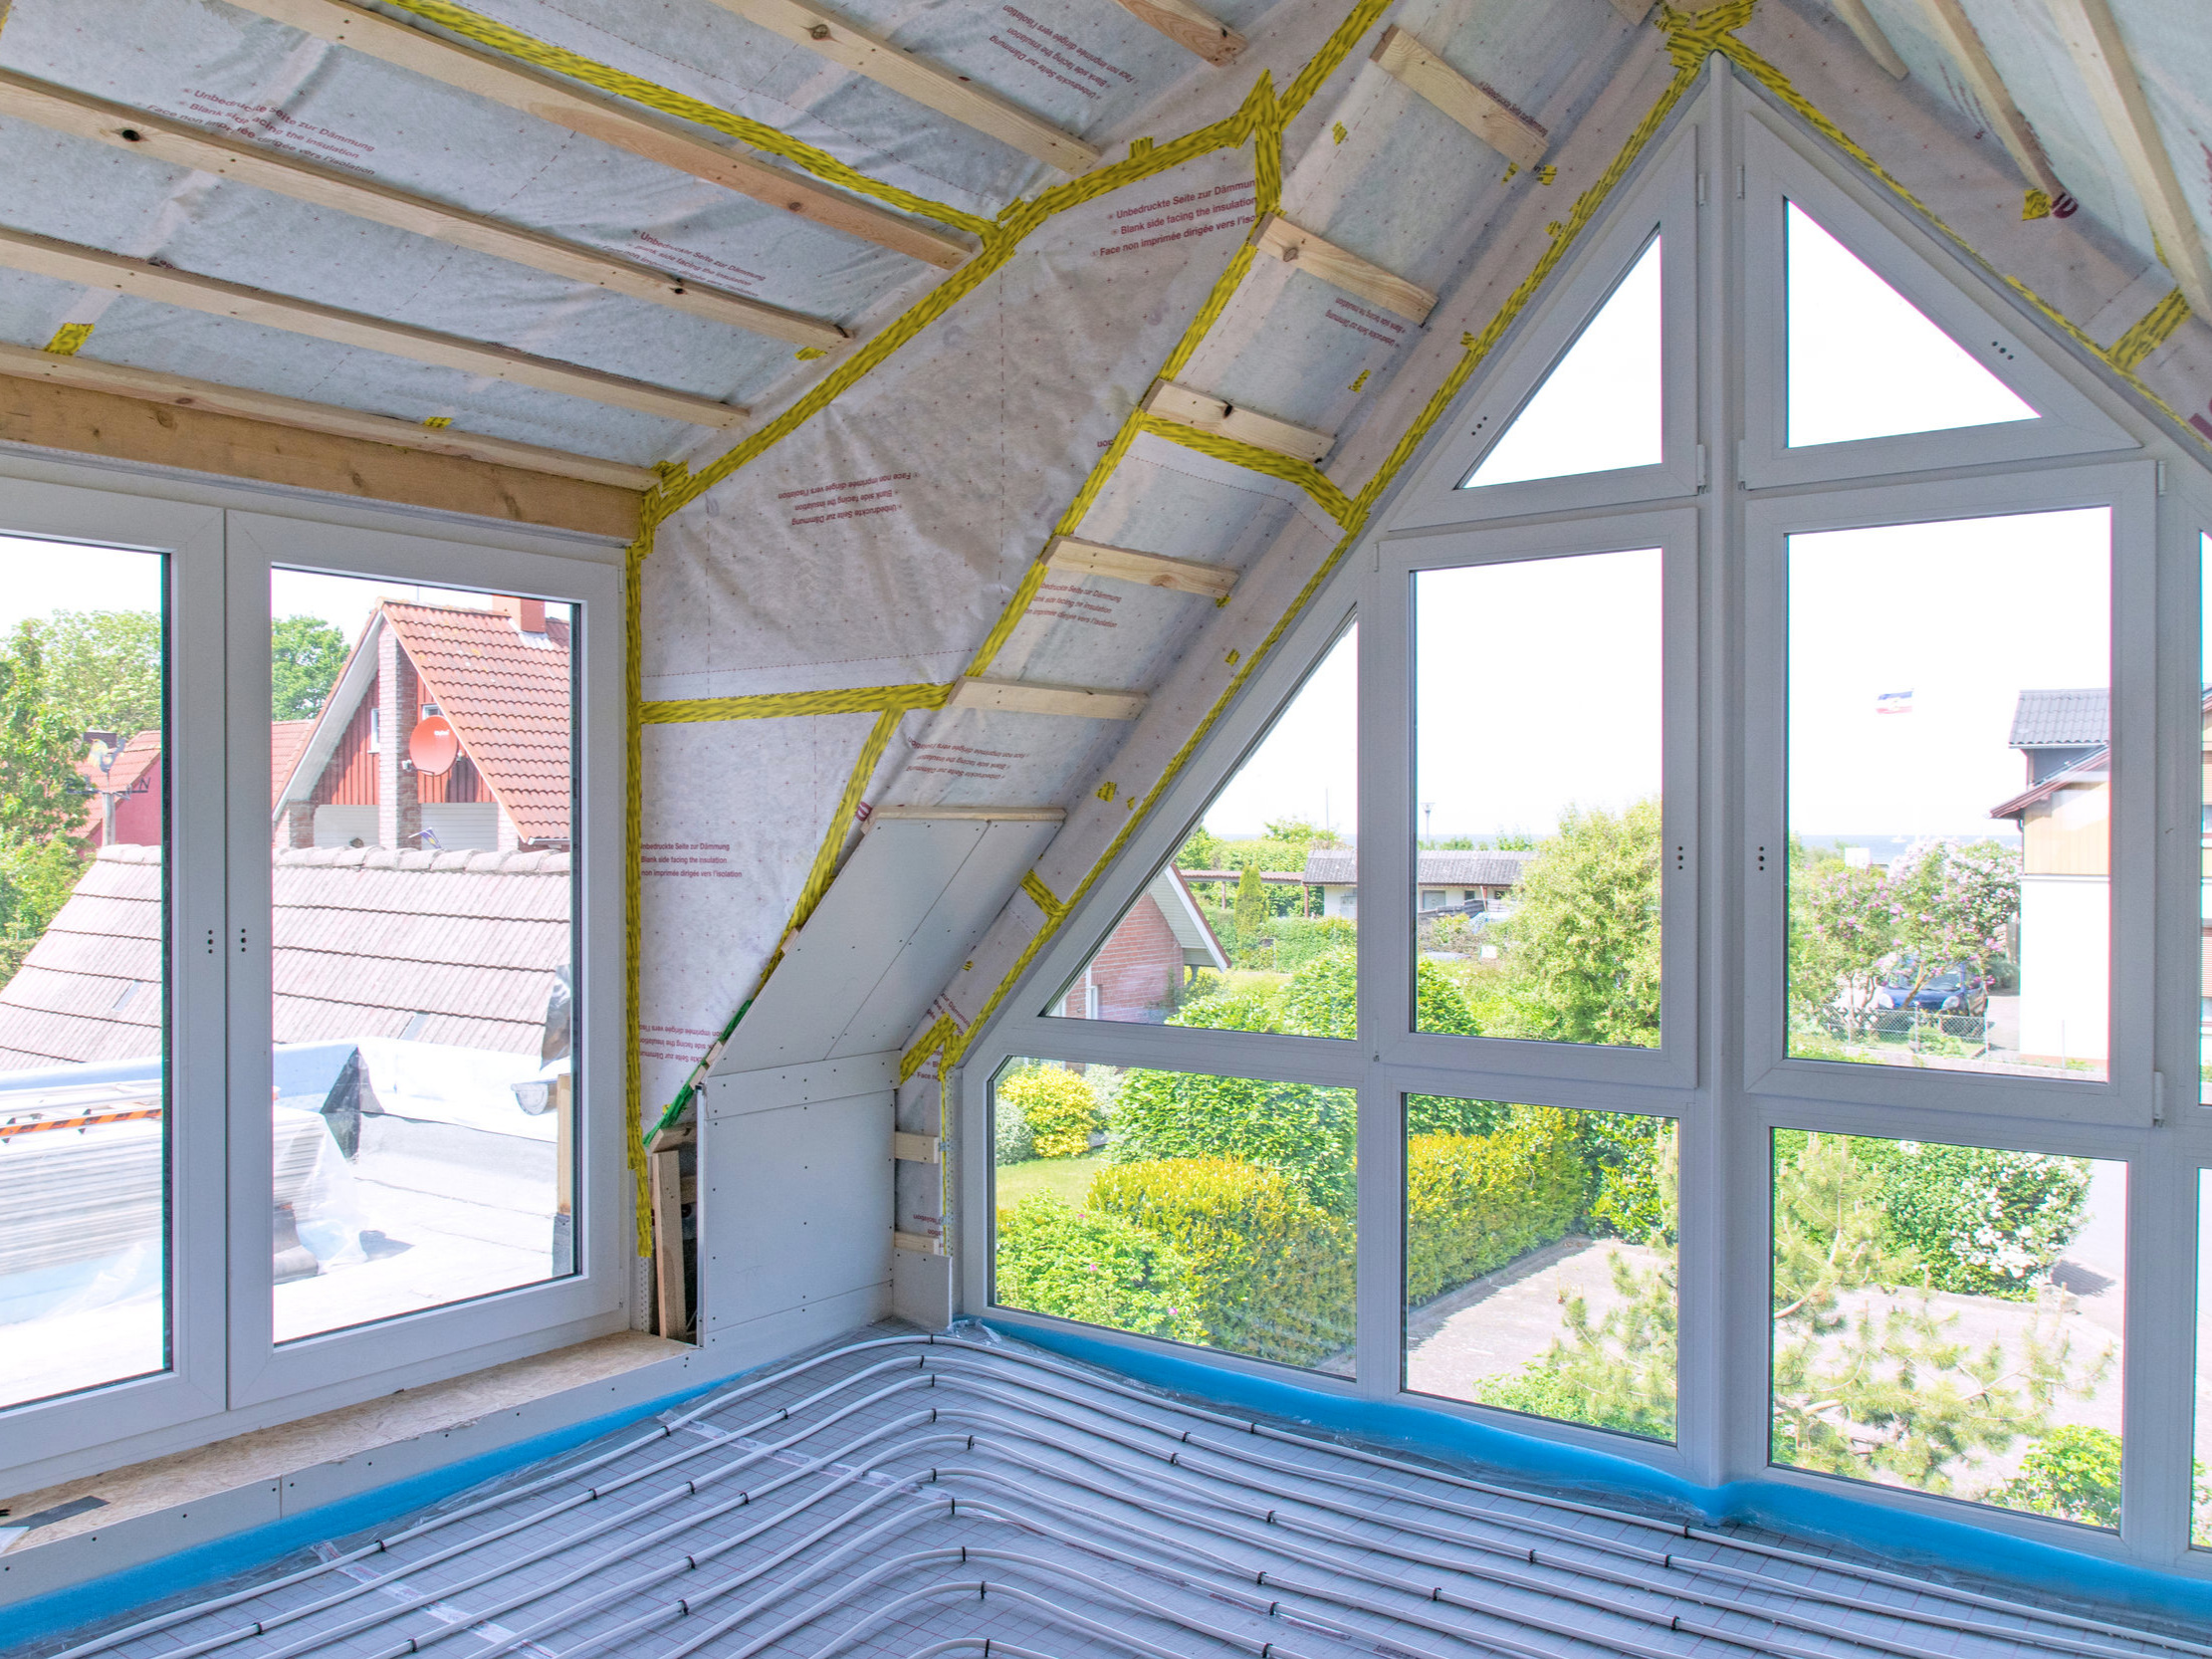 Attics - Attic projects are difficult to maneuver, and can sometimes be hazardous. HANDYMACK can transform your attic from overlooked space into usable space by adding attic stairs or ladders, installing flooring in attic spaces, or safely providing additional storage space for your home.